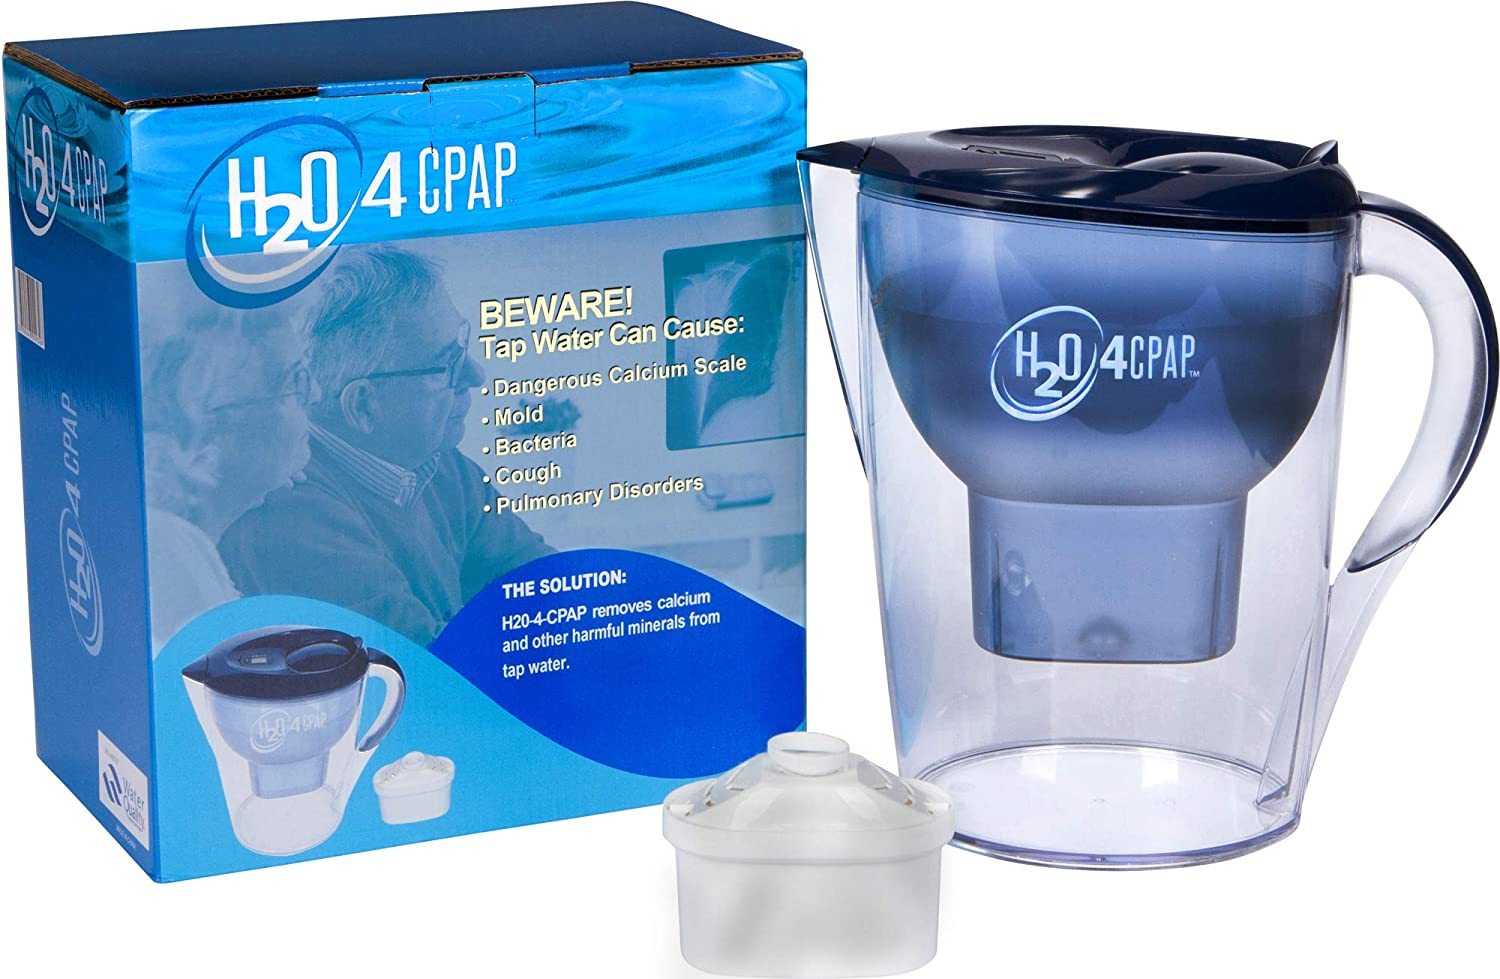 big sale 7a50e 166ee Amazon.com  H2O 4 CPAP Distilled Water Filtering System   for CPAP  Humidifier Water Chambers   Removes Harmful Calcium   Minerals from Tap  Water   Filter ...